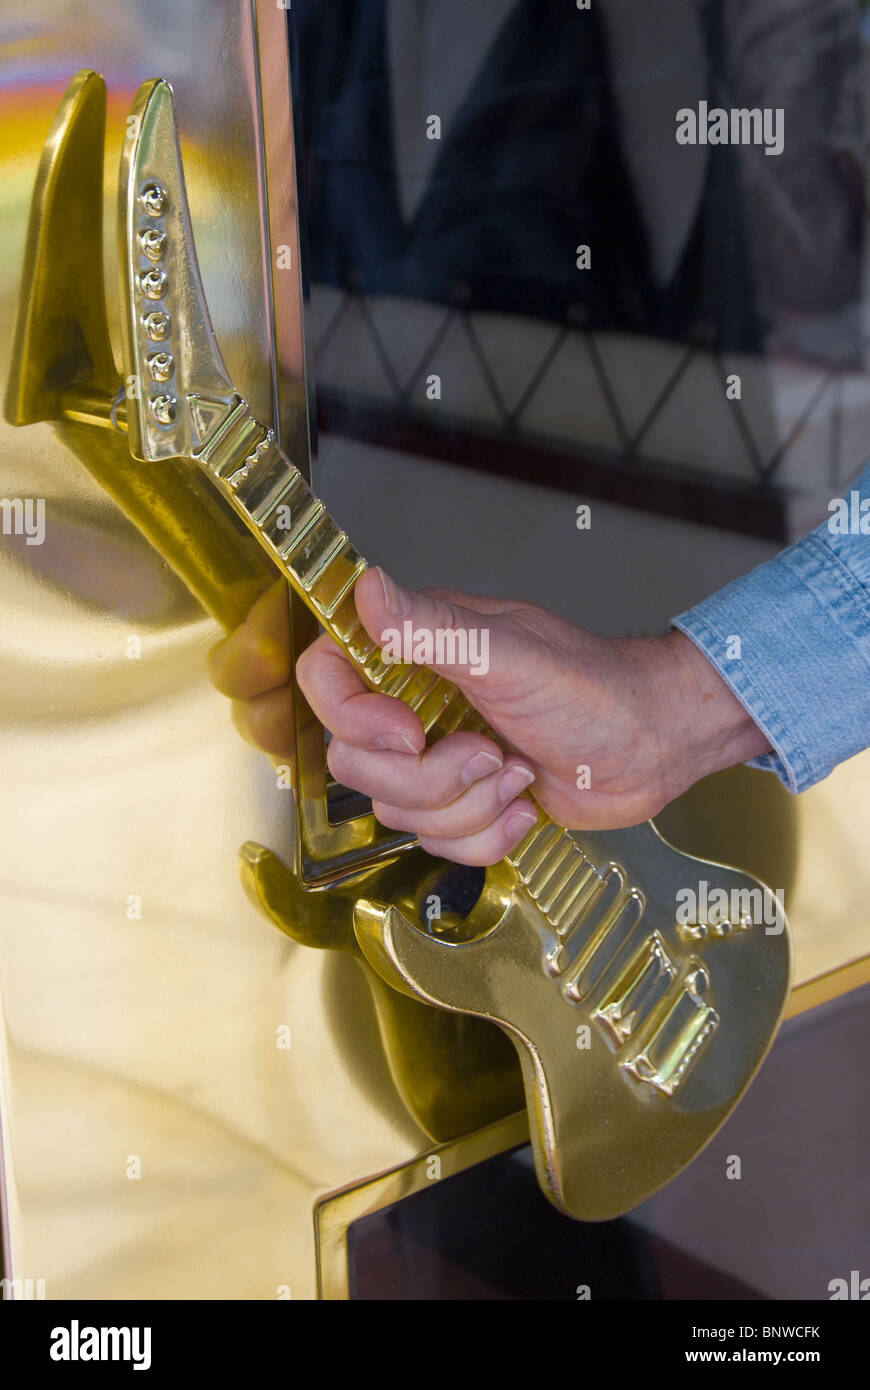 Man's hand on guitar shaped door handle at entrance of Hard Rock Cafe on the River Walk in San Antonio, Texas, - Stock Image